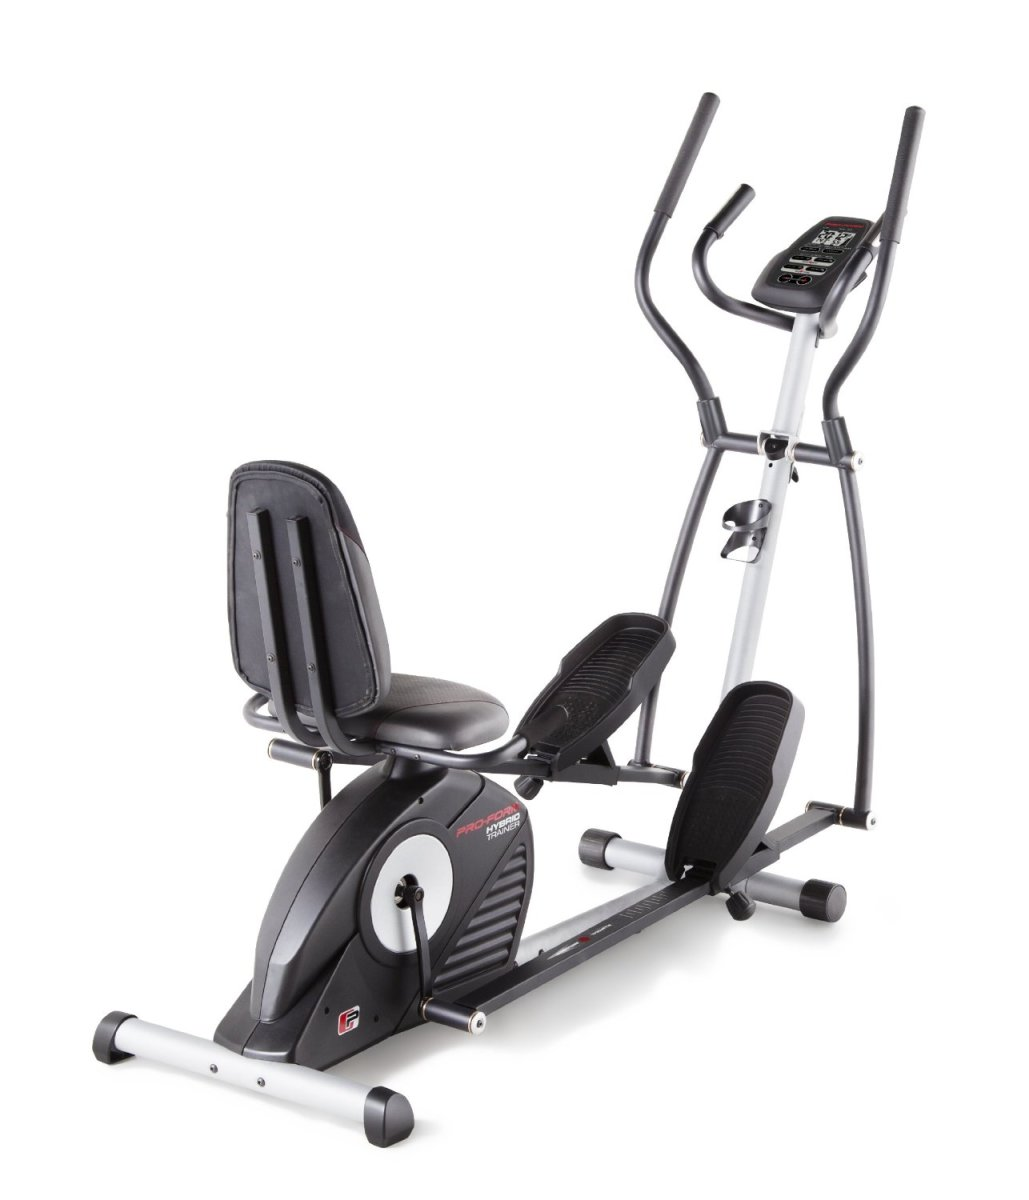 proform hybrid elliptical machine